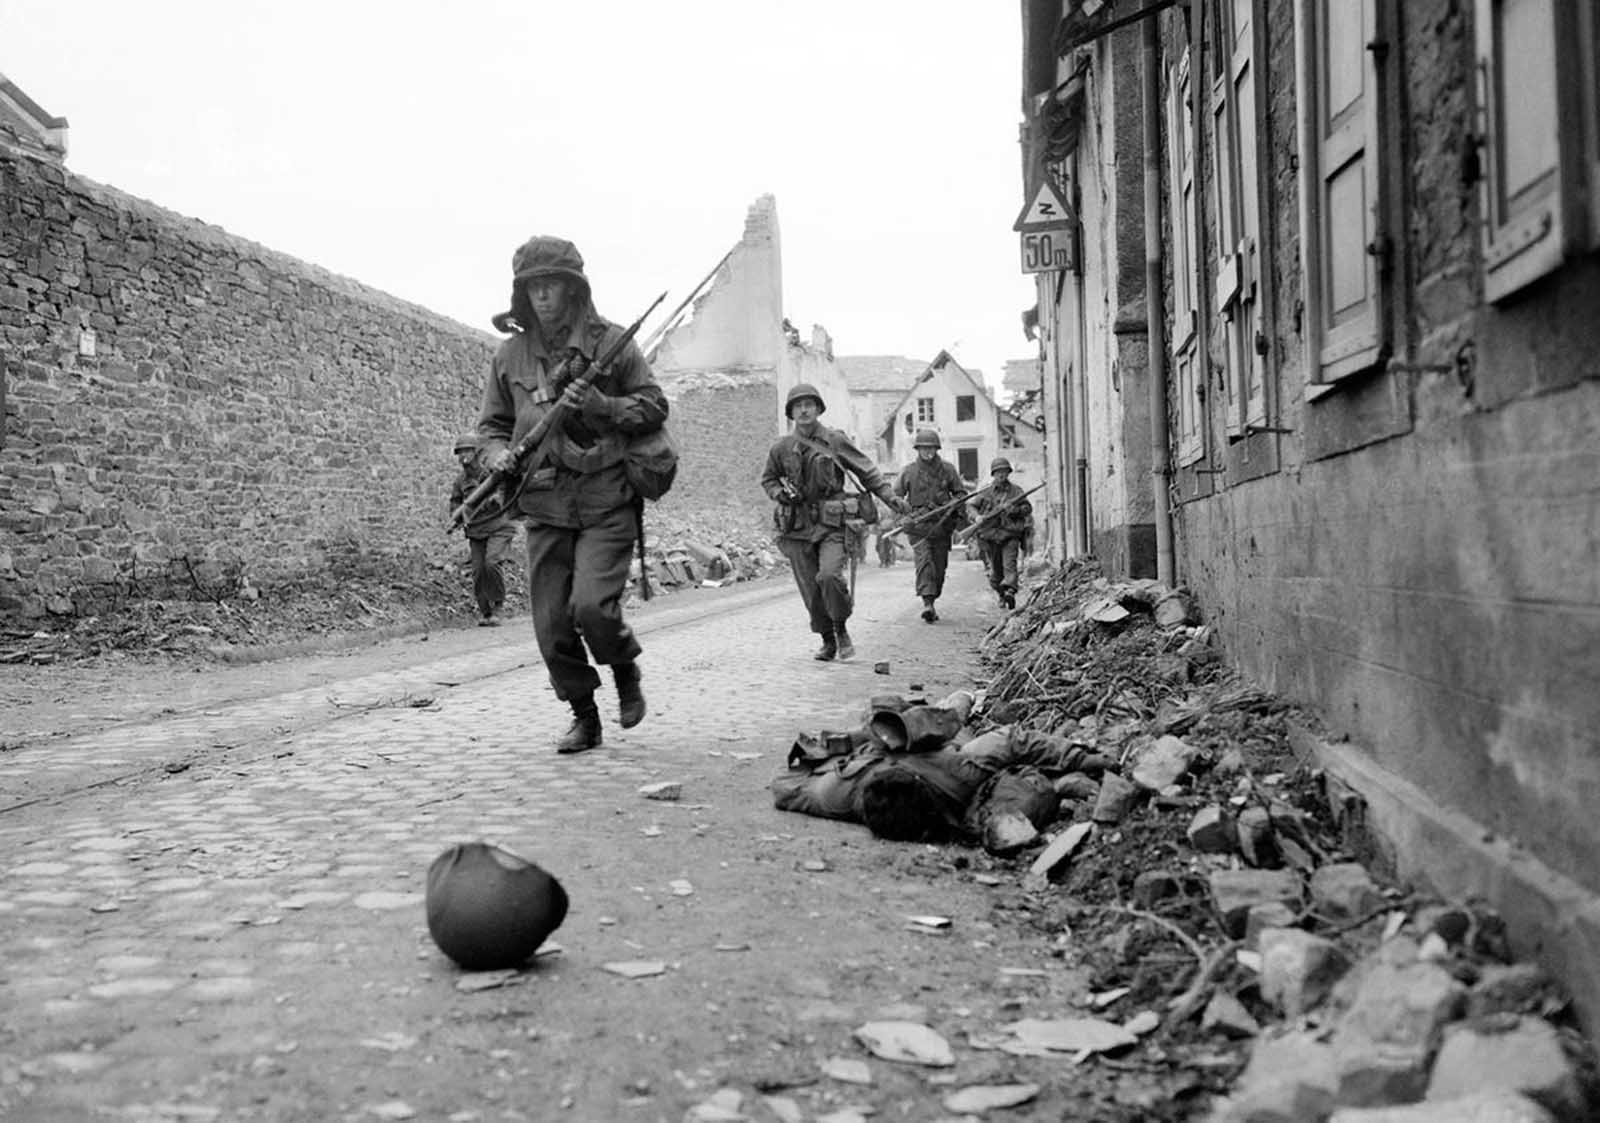 Soldiers of the 3rd U.S. Army storm into Coblenz, Germany, as a dead comrade lies against the wall, on March 18, 1945.